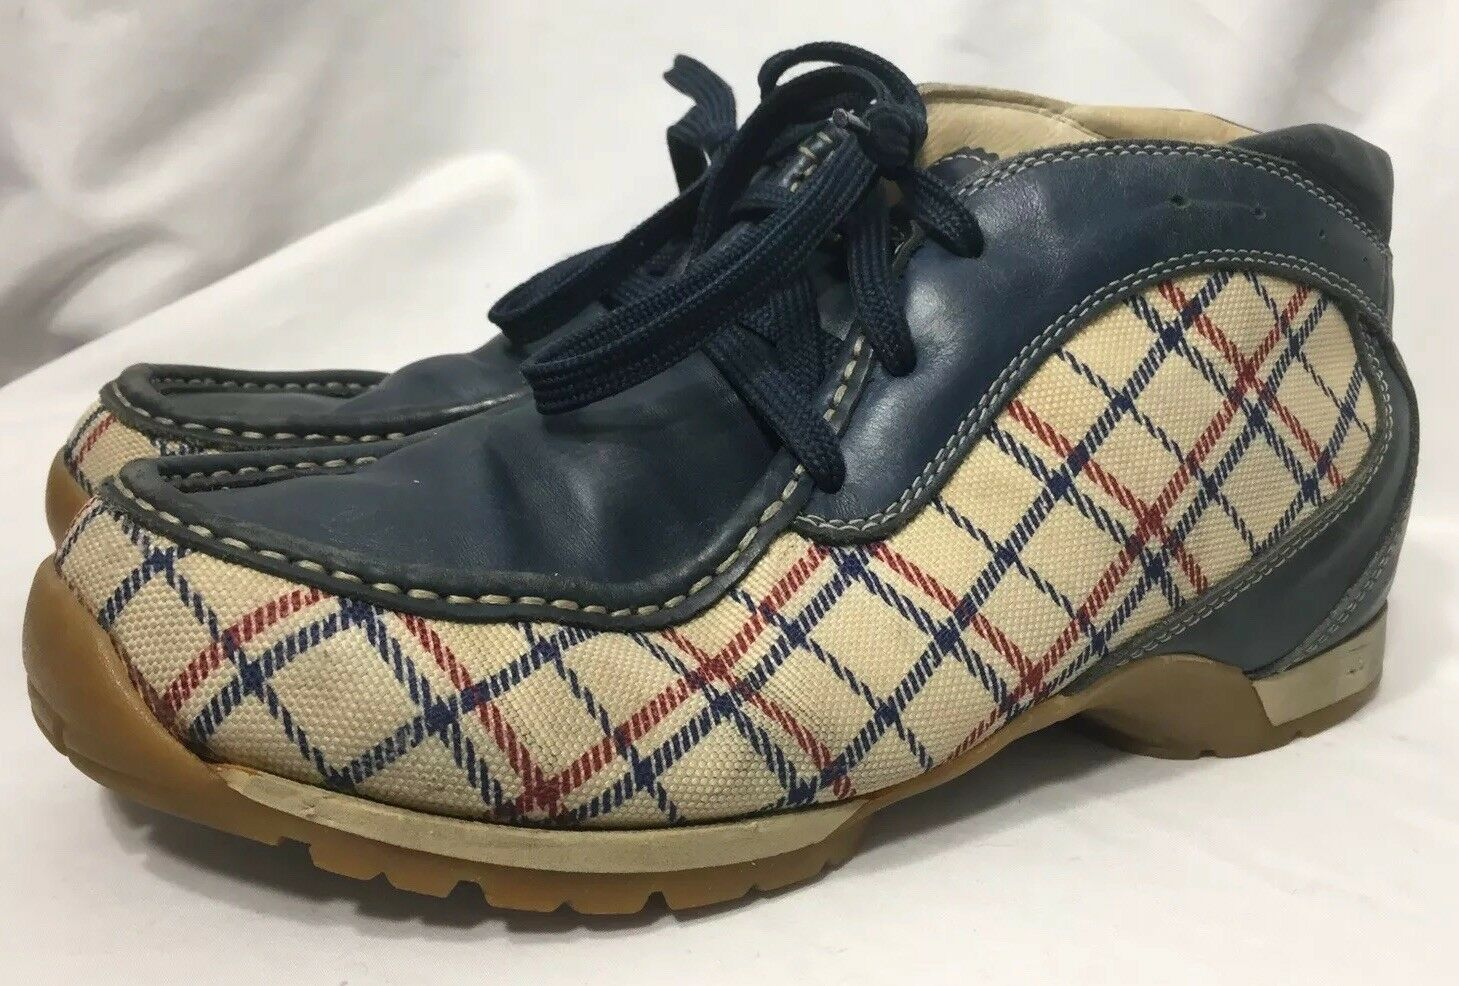 Dolomite bluee Plaid Ankle Boots Men's Size 10 Hiking Trail Fashion VTG